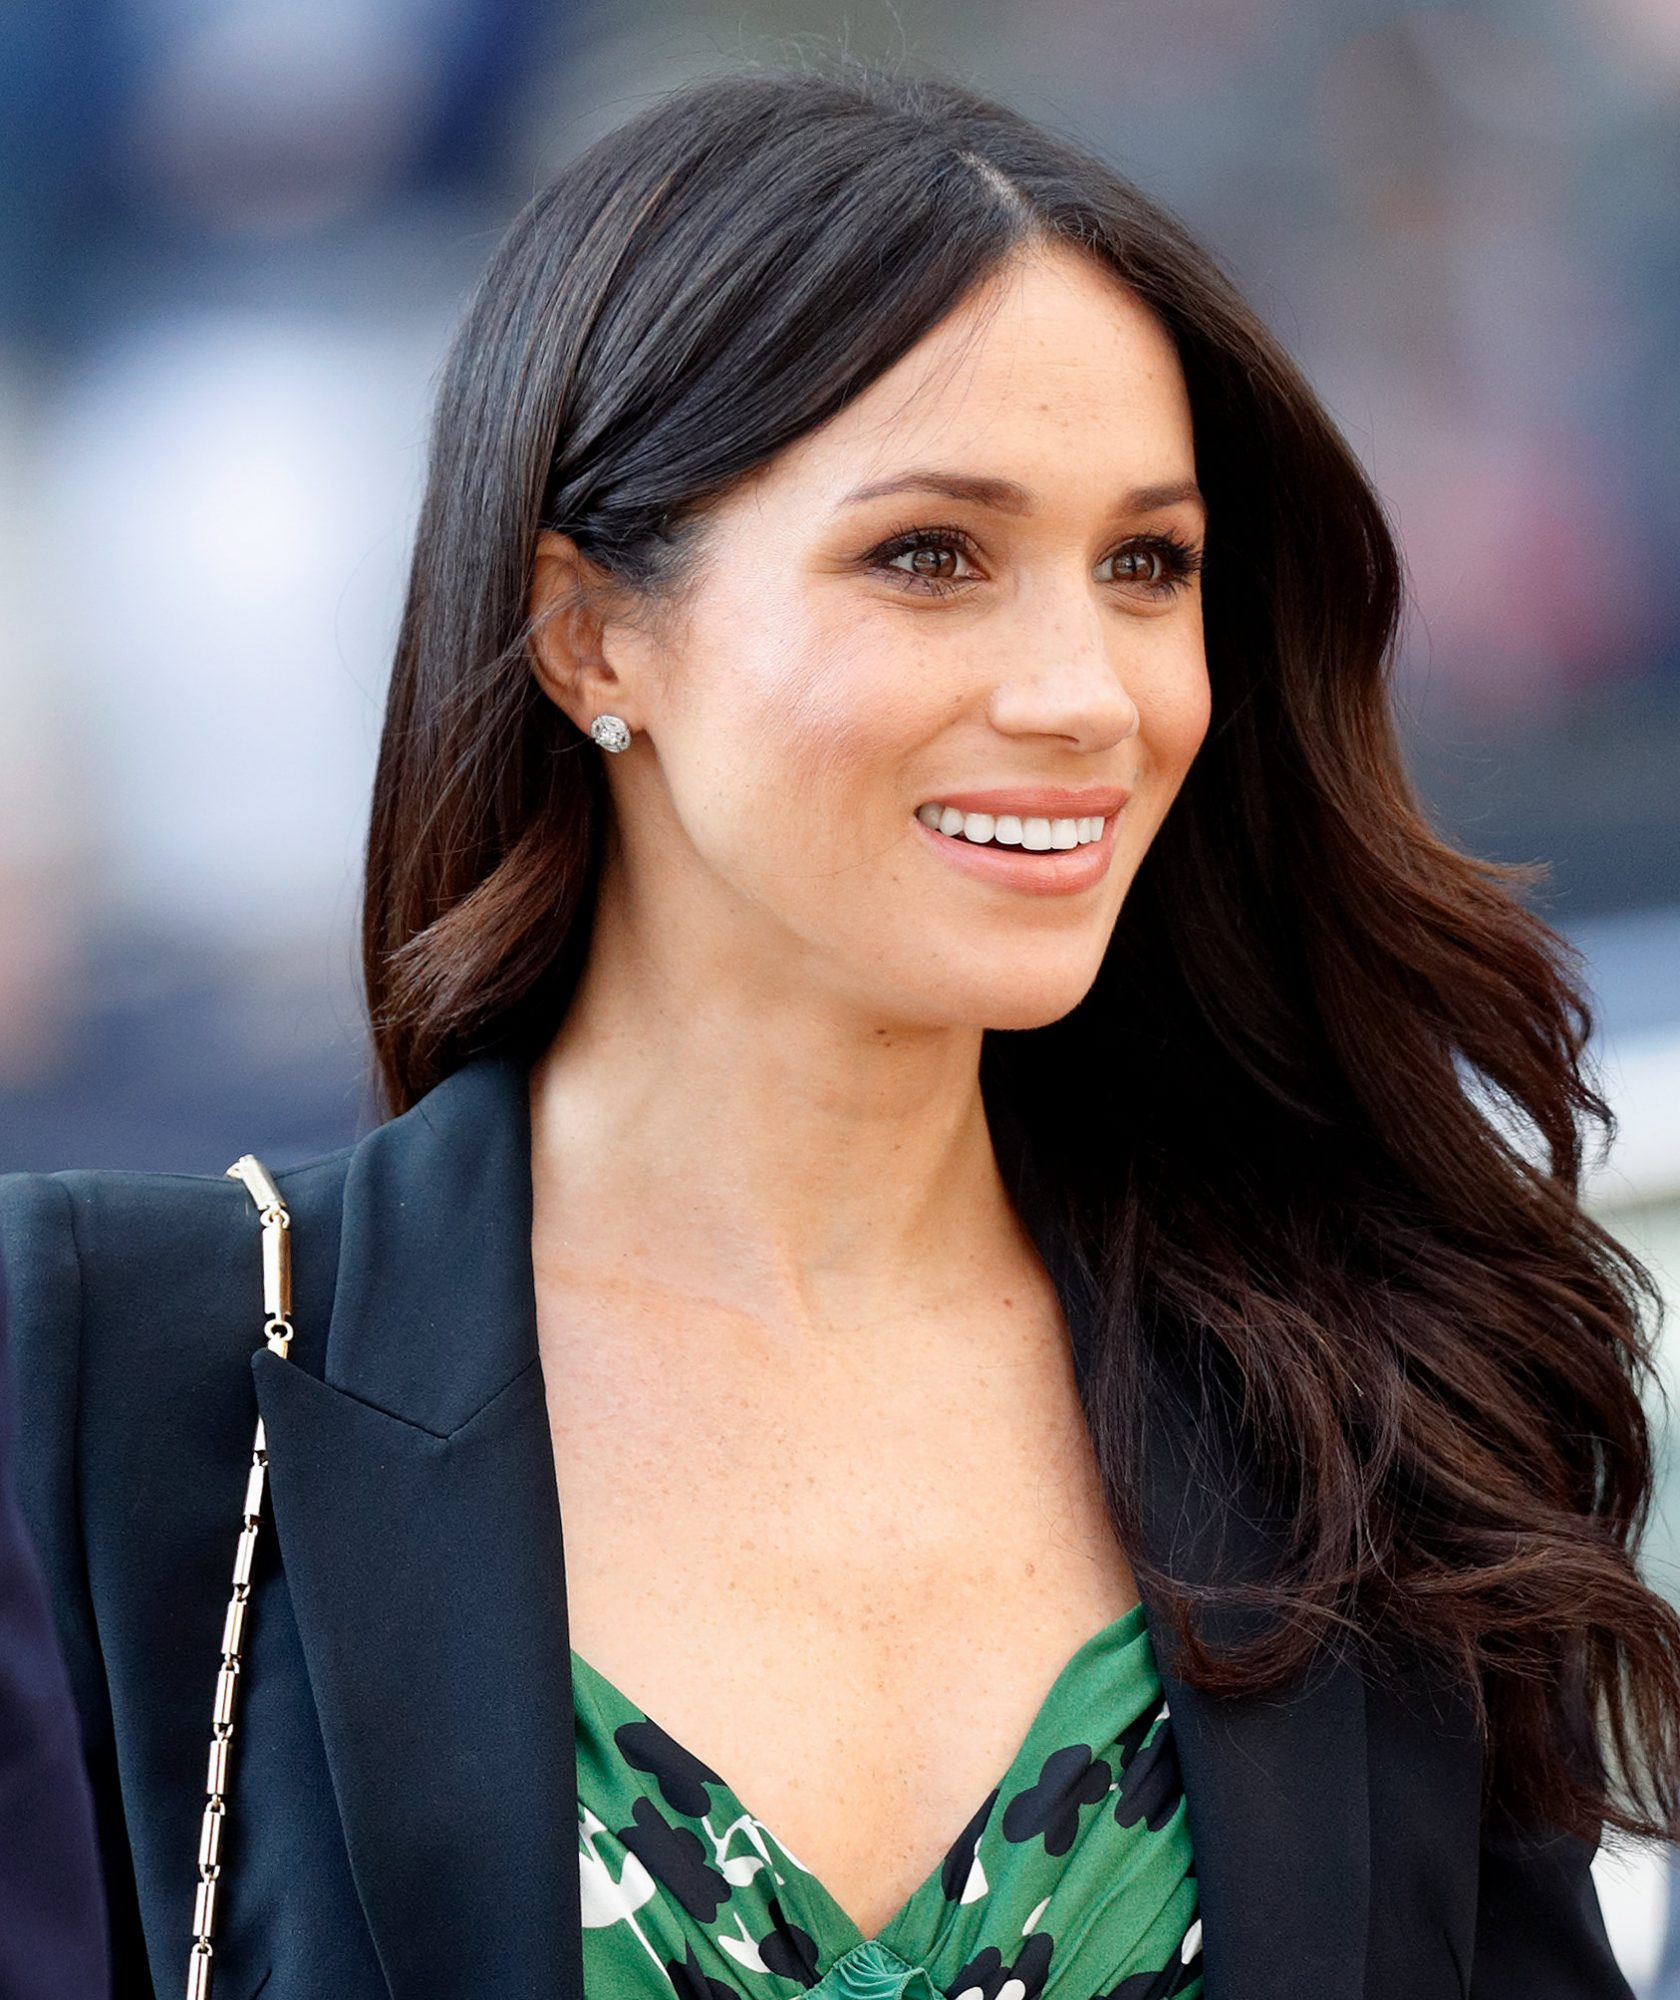 I Took Meghan Markle's Favorite Hot Yoga Class and I Could Barely Keep Up